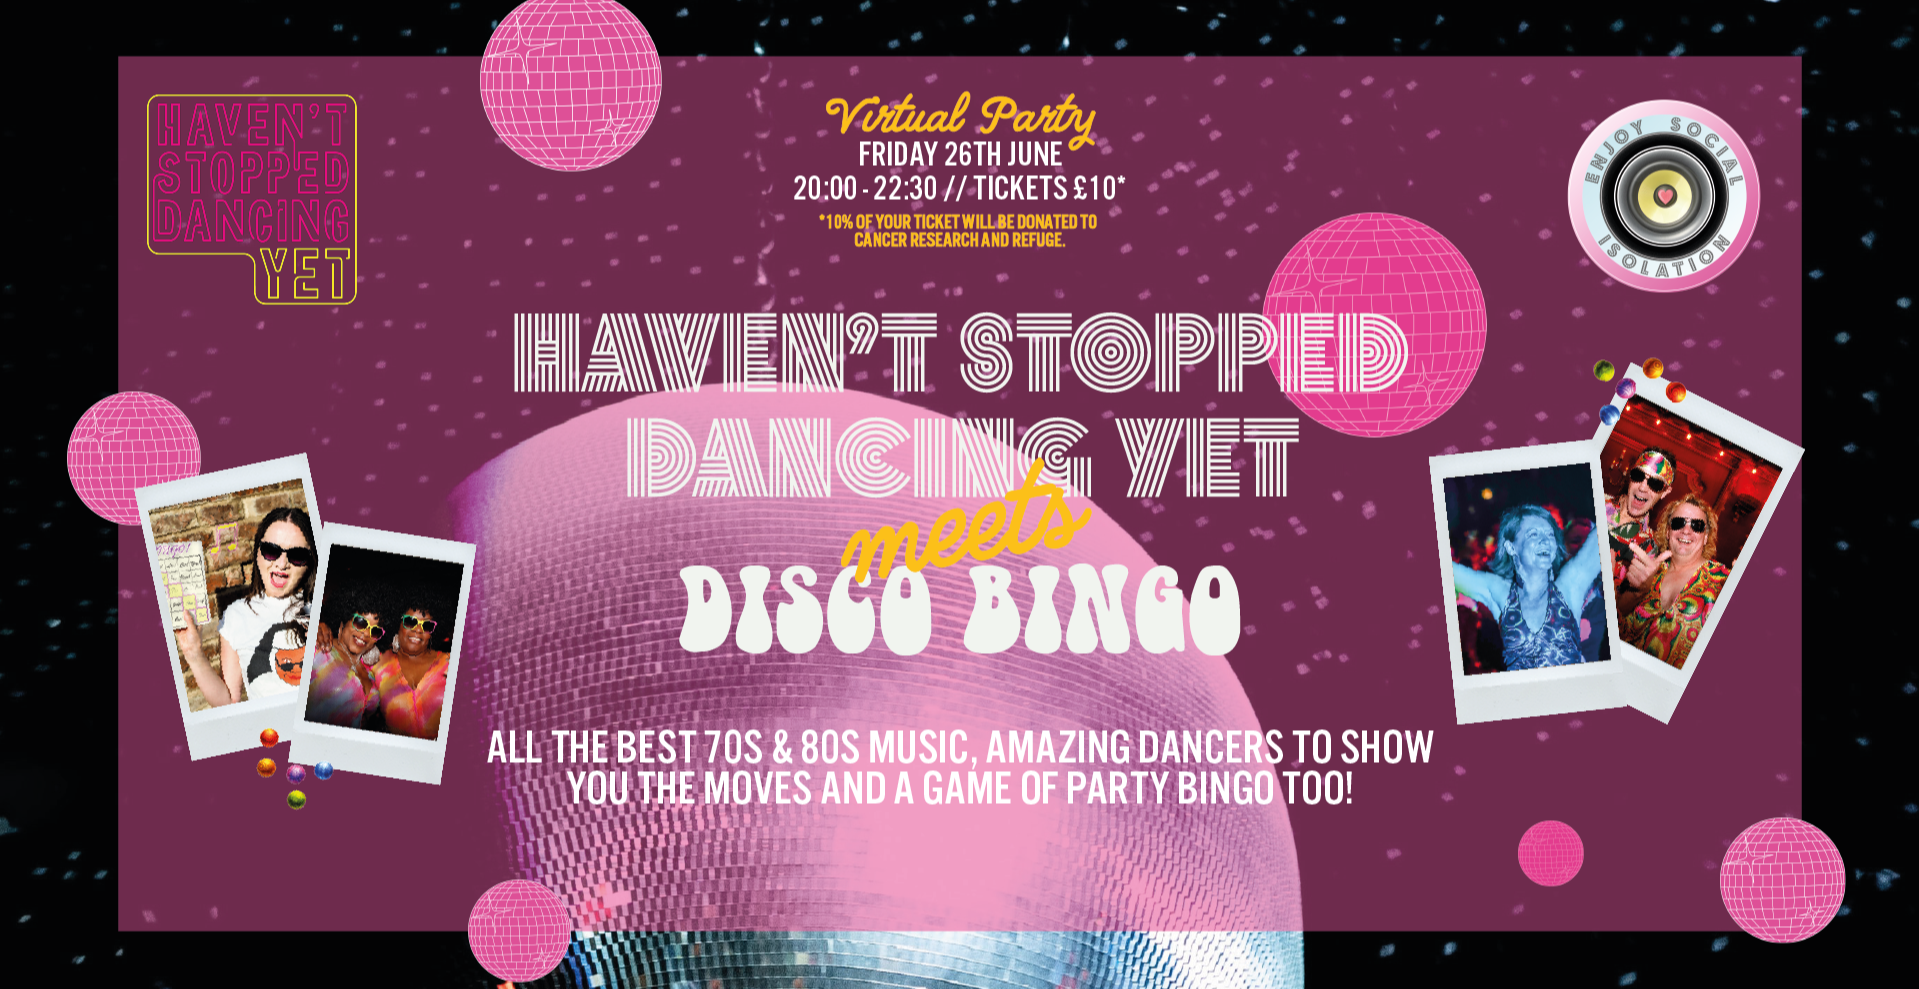 Haven't Stopped Dancing Yet Meets Disco Bingo